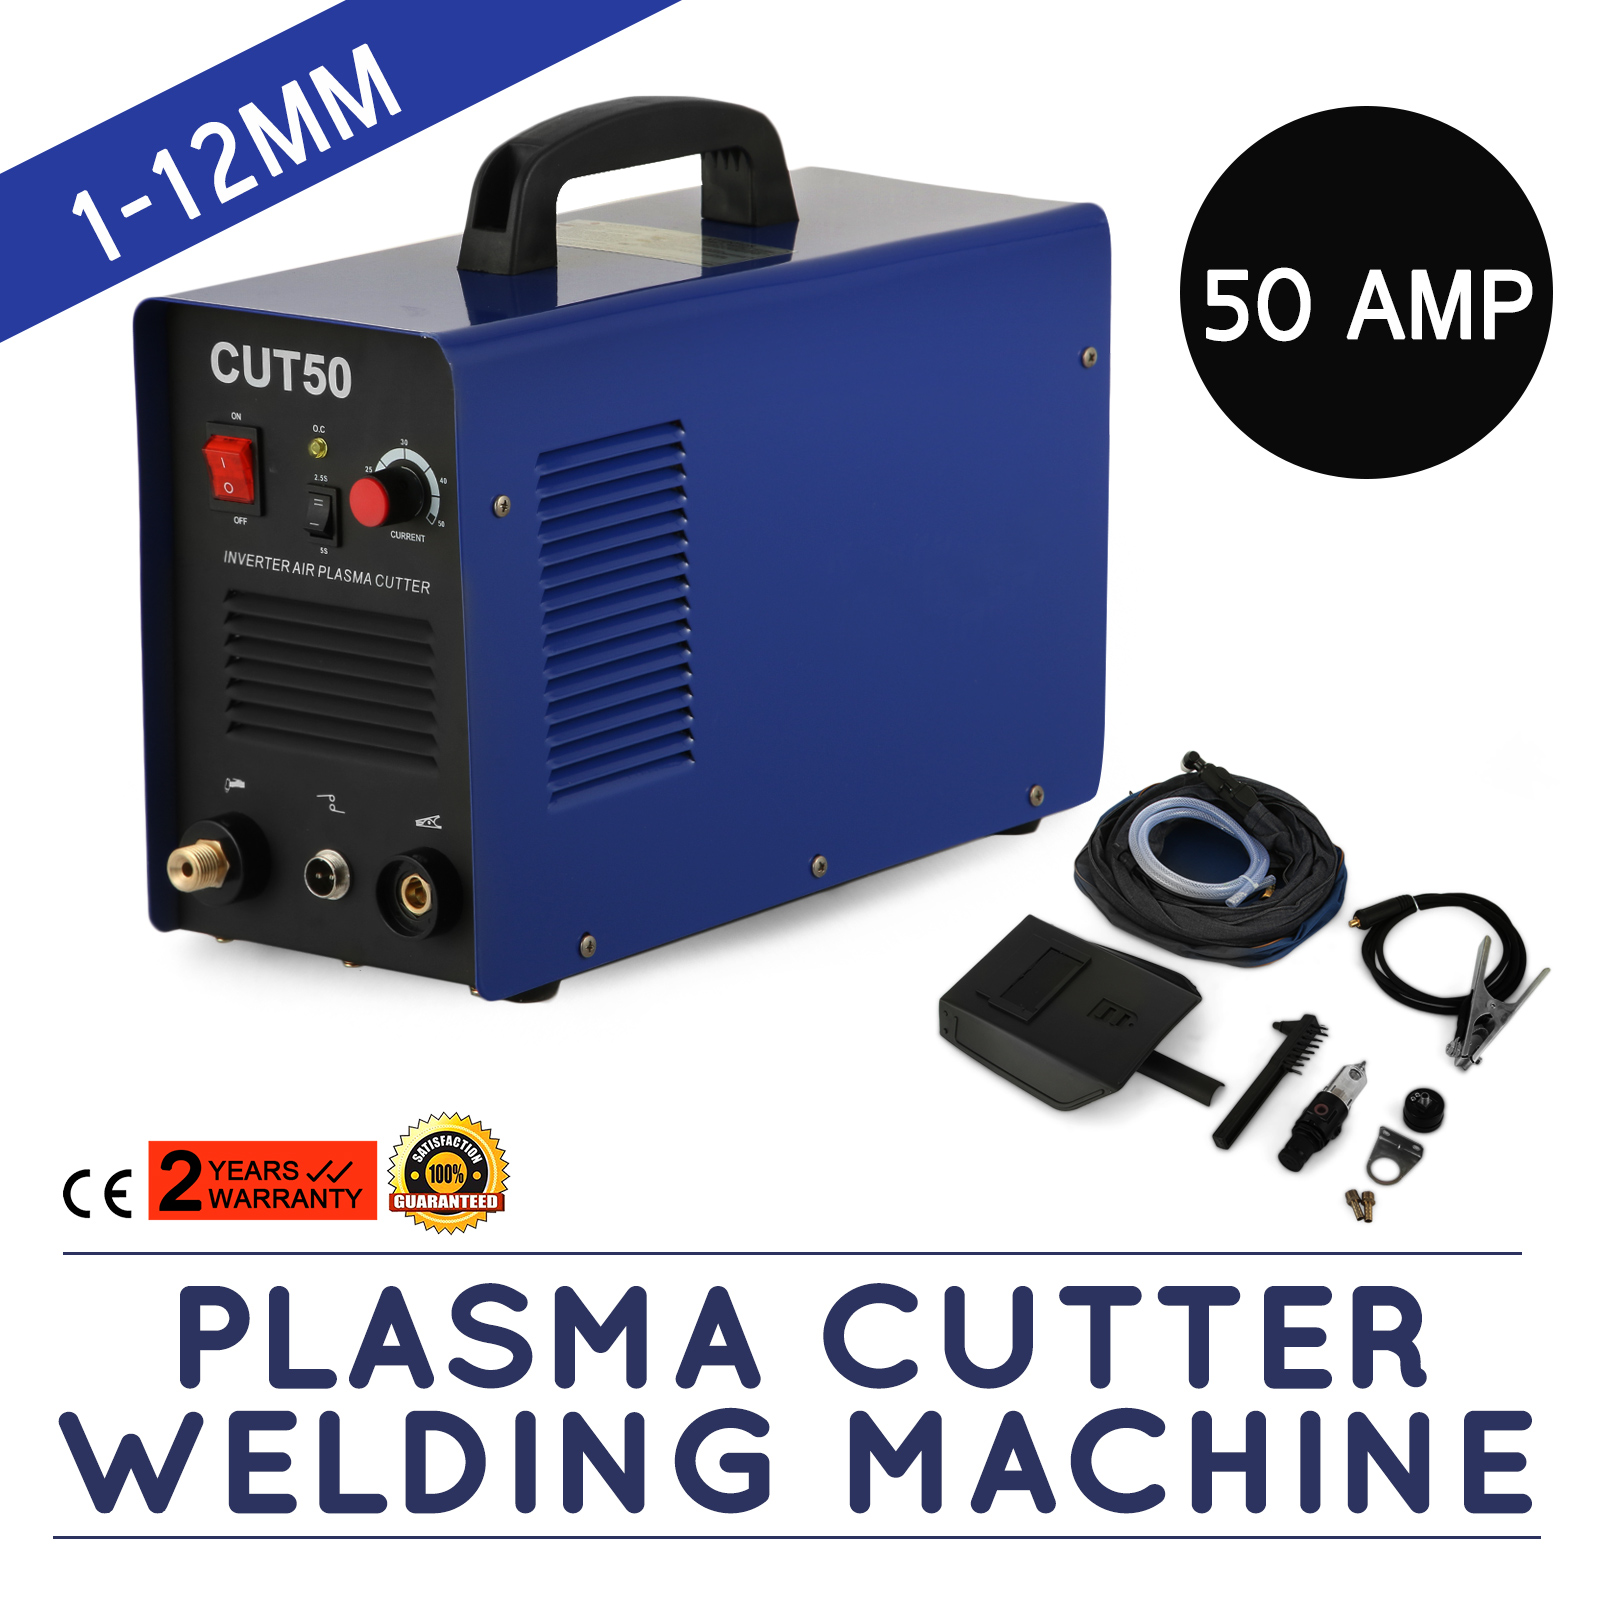 two money materials are front to choose cutter cutting modes at also reviews down or you plasma lincoln can it turn for high power the portables very hypertherm top from cut there thicker best precise make